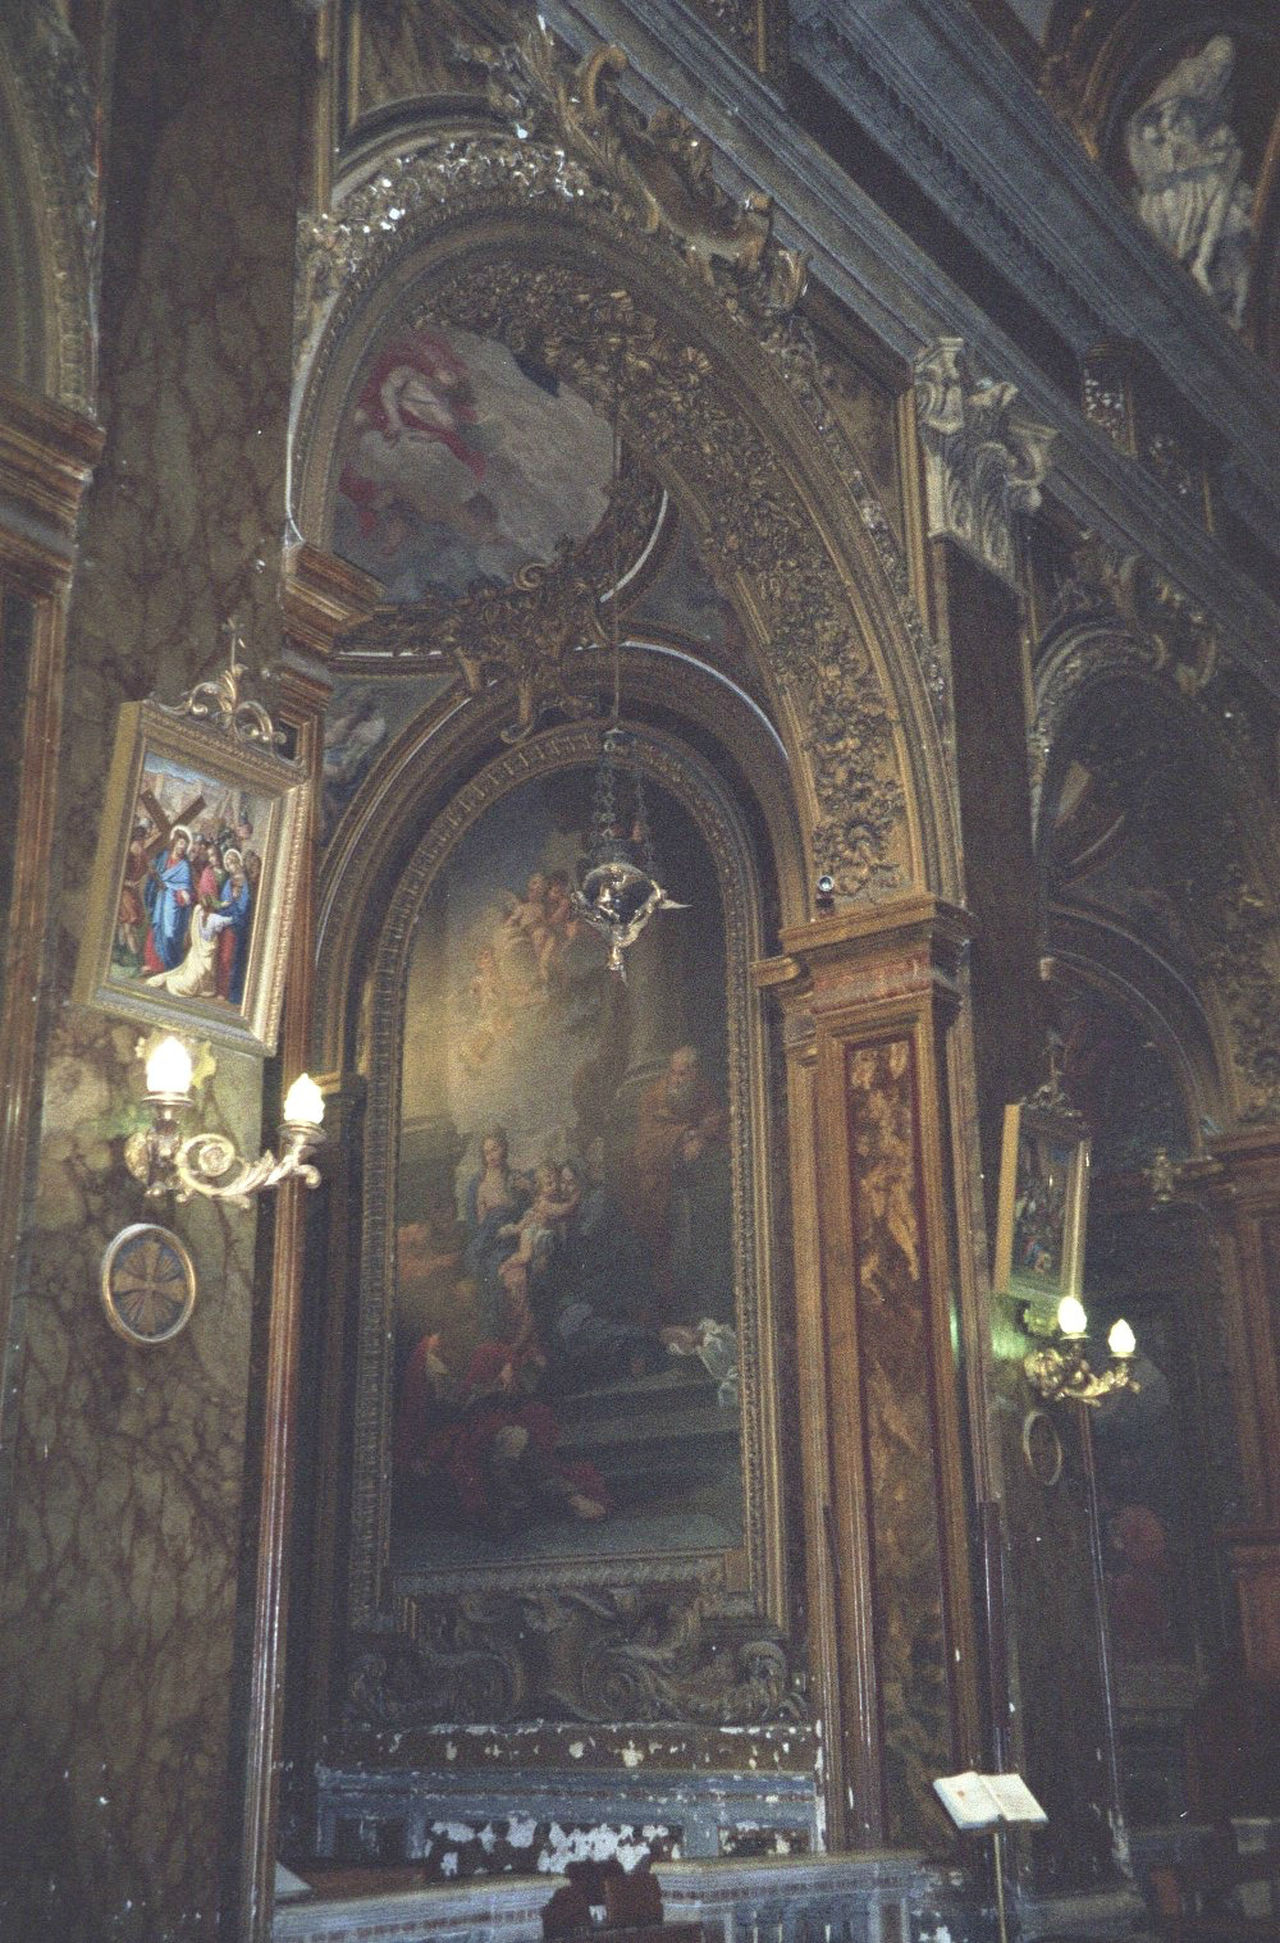 35mm Film Analogue Photography Architecture Basilica Built Structure Candles Church Dark Decoration Fresco Gold Human Representation Indoors  Italian Italy Low Angle View No People Place Of Worship Religion Rococo Roman Rome Spirituality